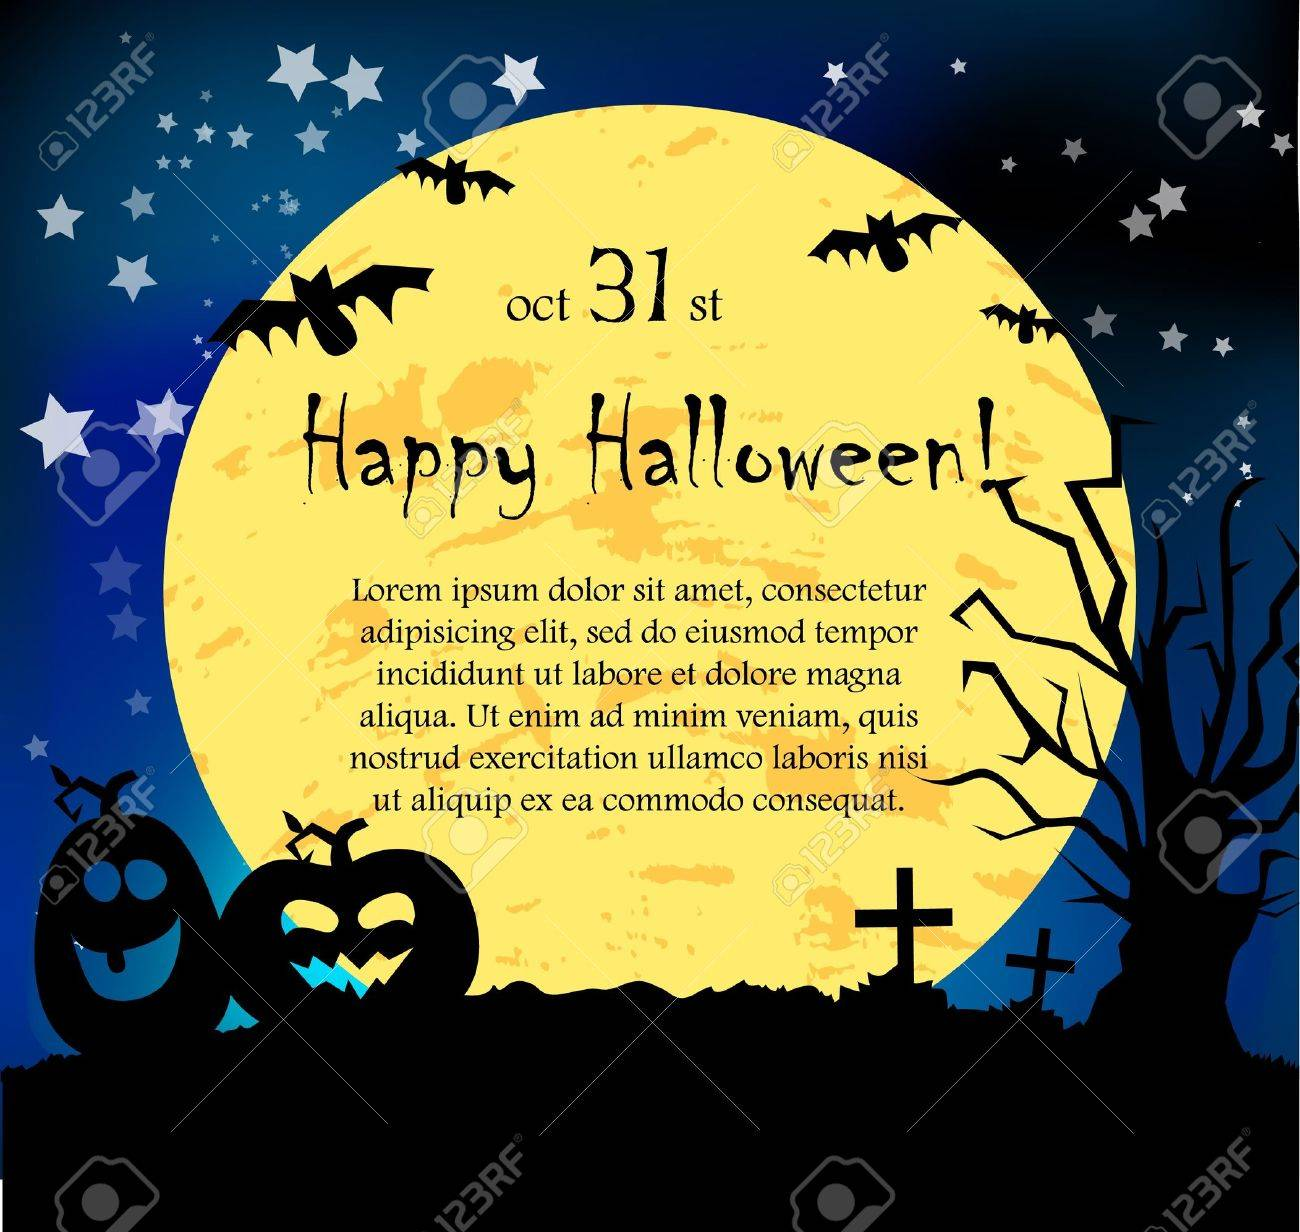 Vector Halloween Card With Pumpkins Royalty Free Cliparts, Vectors